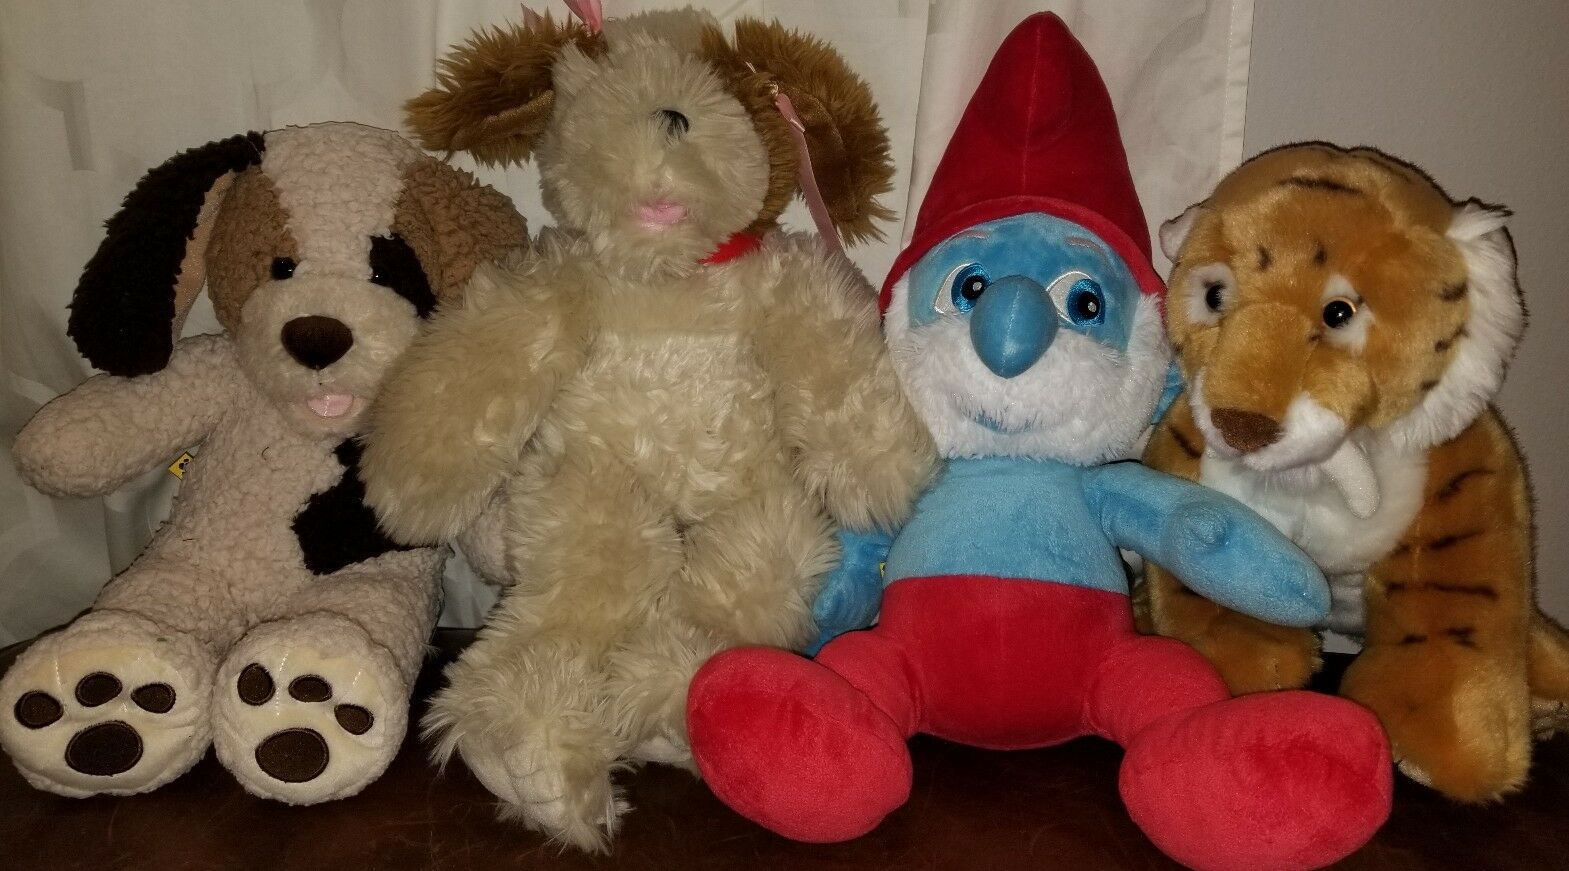 4 plush stuffed build a bear lot papa Smurf, dogs, saber tooth tiger